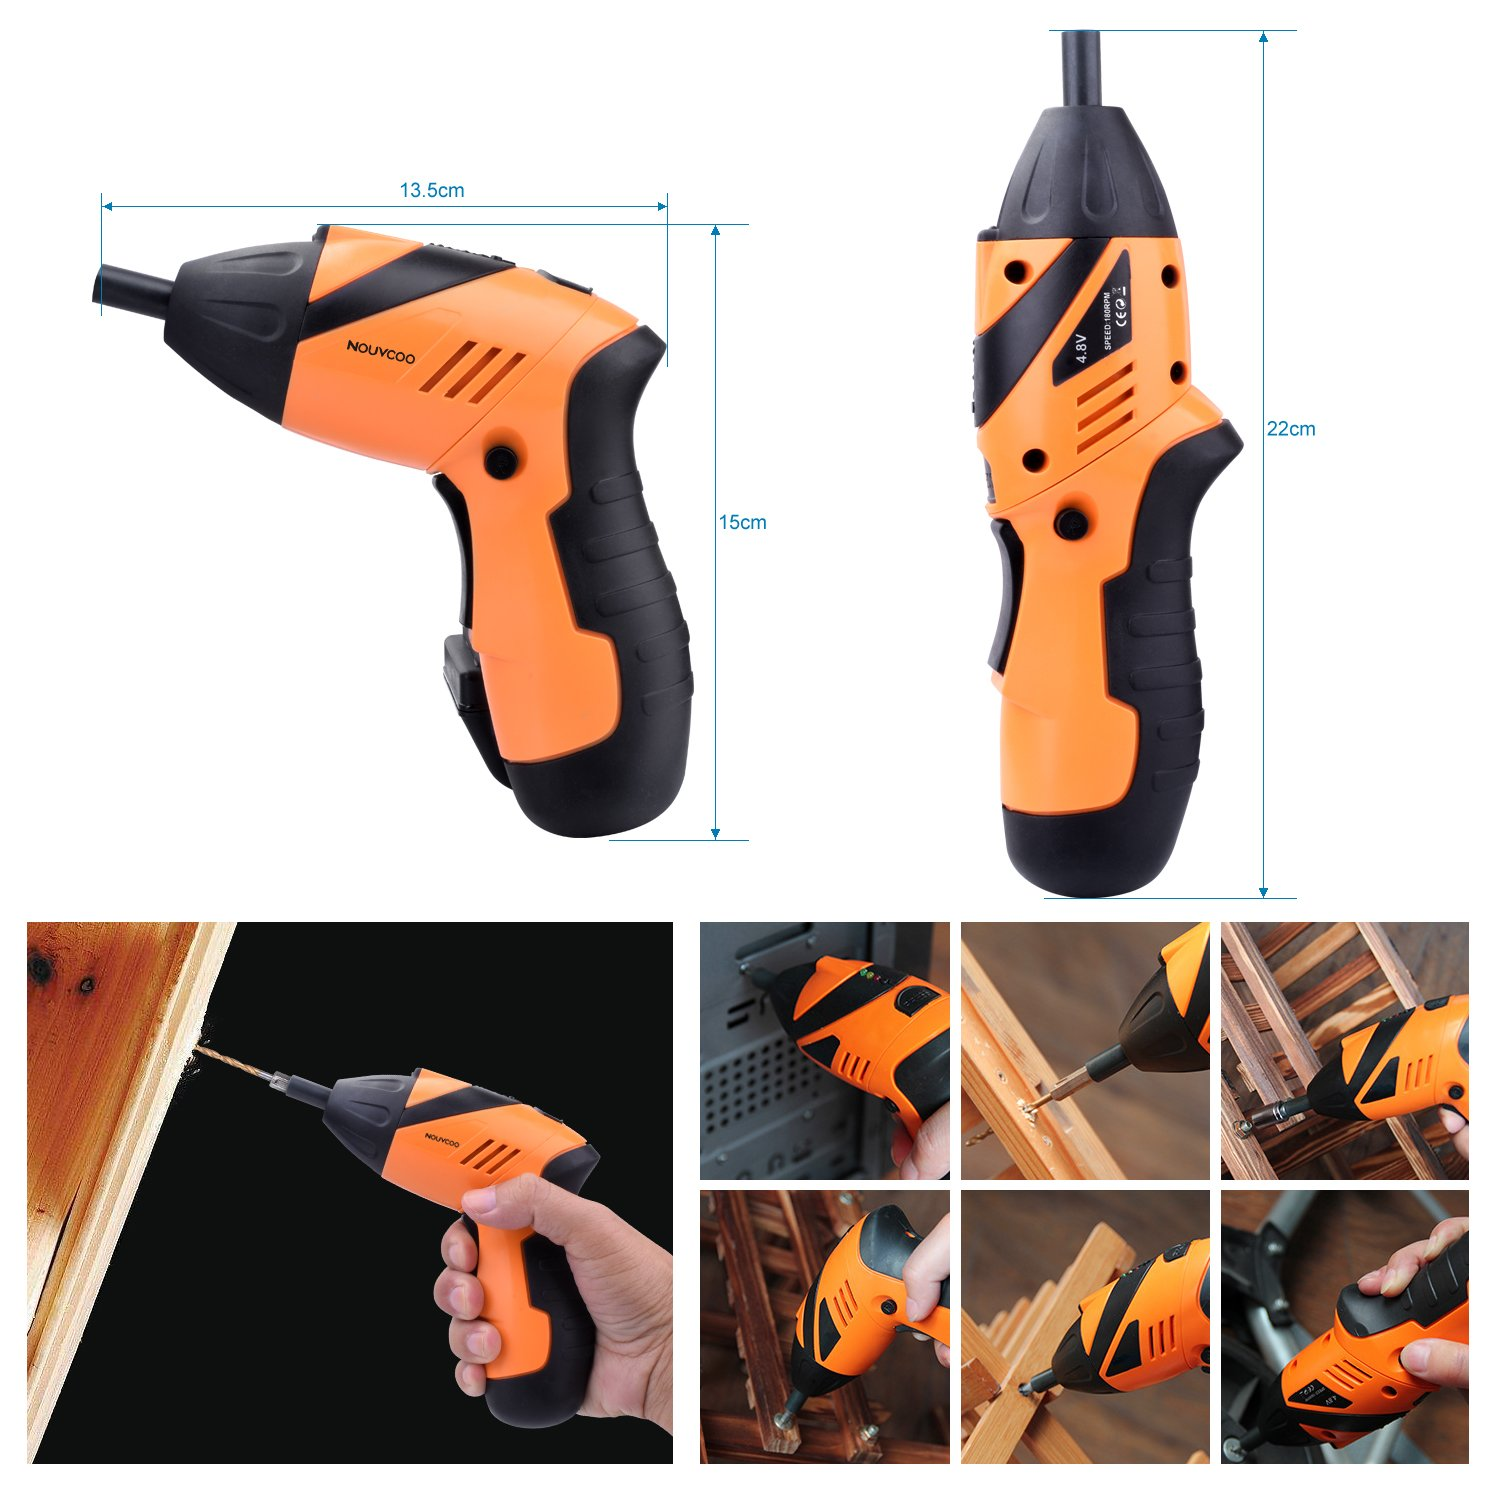 NOUVCOO 45 in 1 Portable Electric Cordless Rechargeable Screwdriver kit,4.8V Cordless Drill Power Tools with Led/&43pcs Screws Sleeves and Drill Bits with case NC09